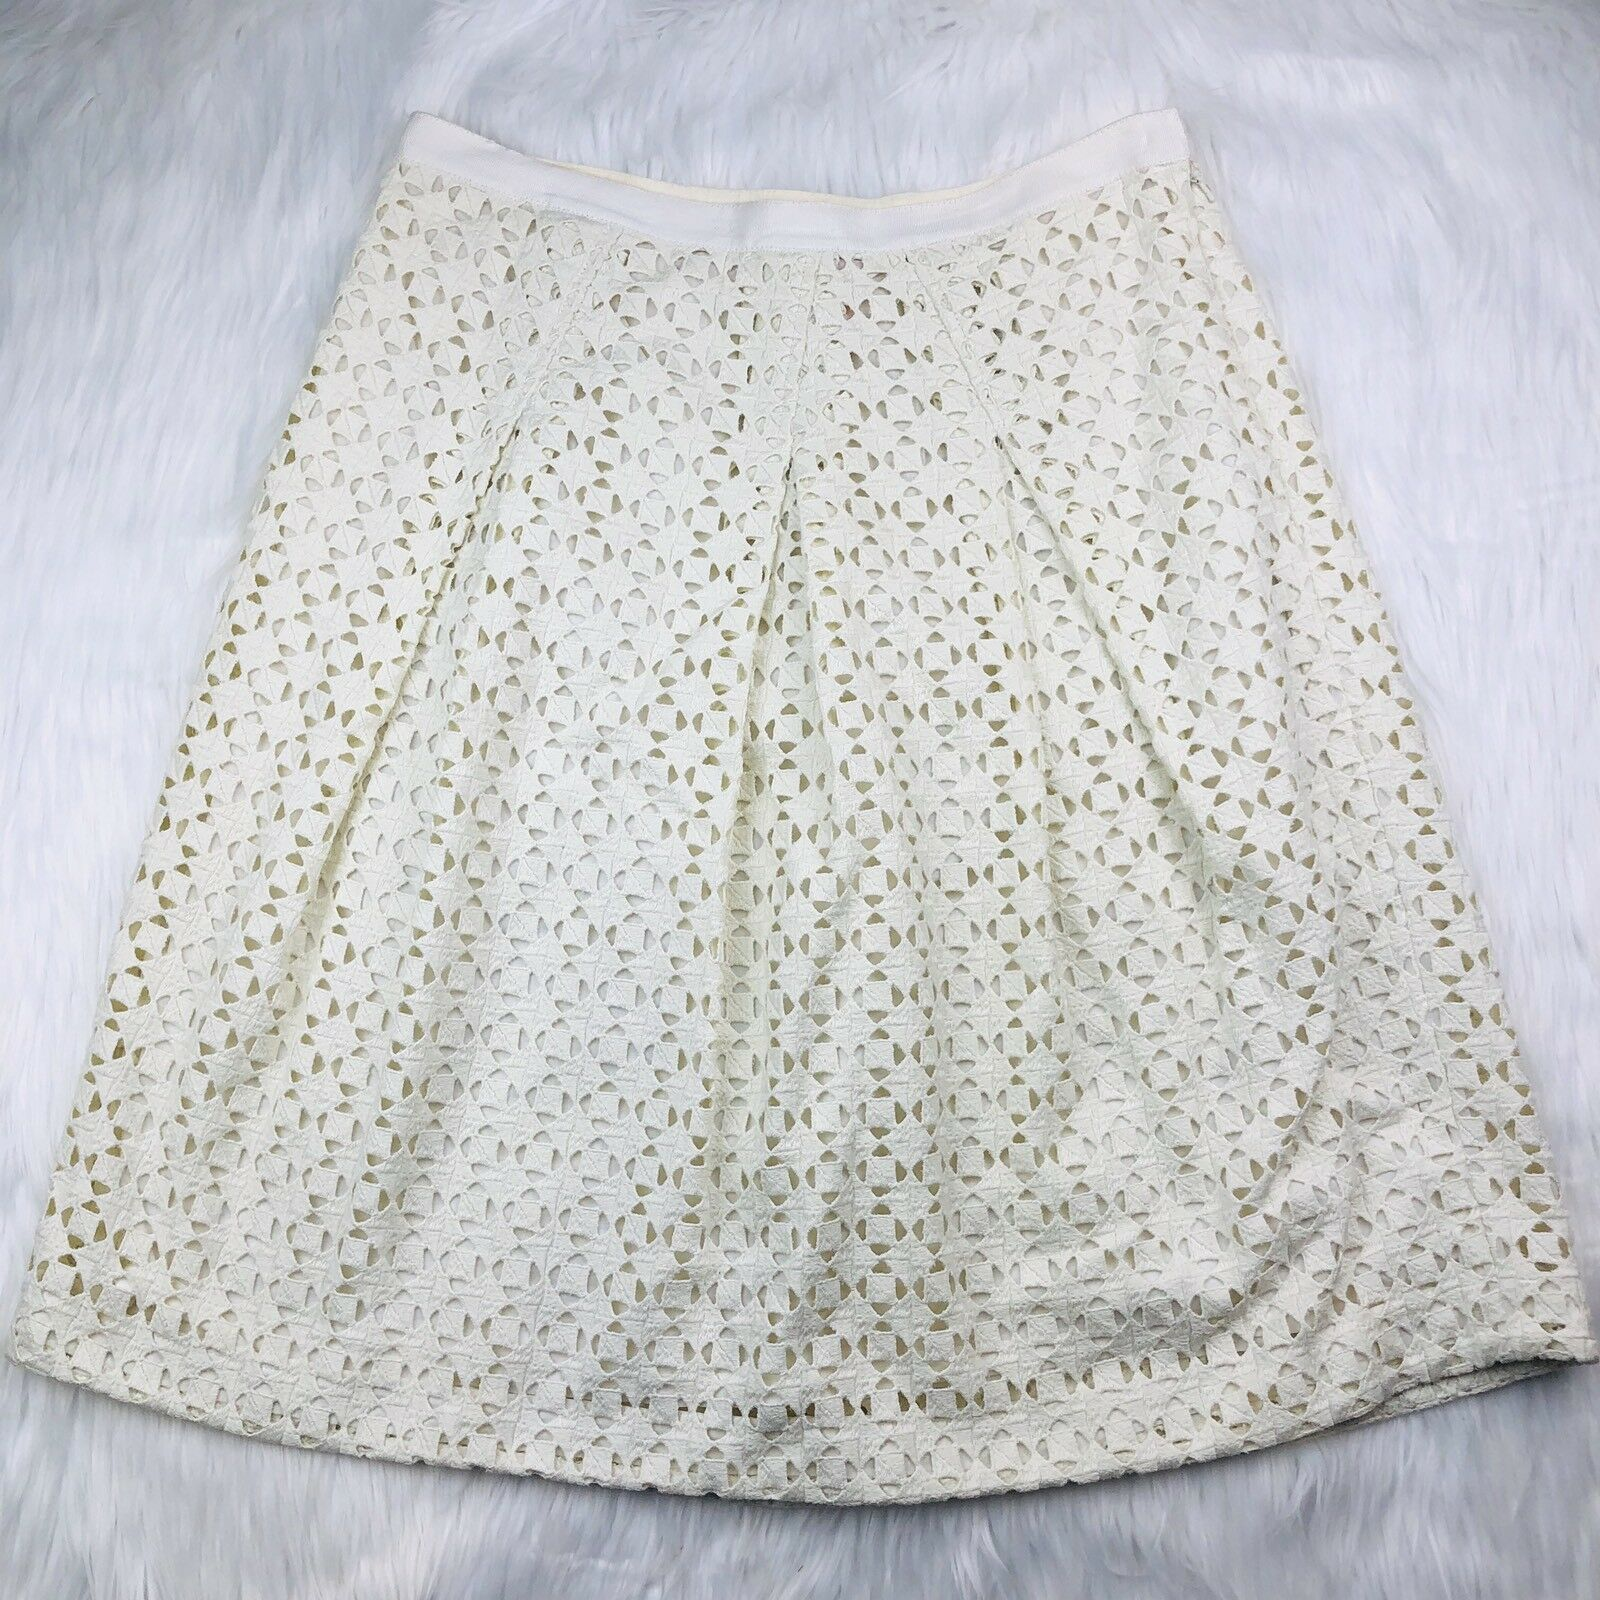 Tory Burch Größe 10 Skirt Haylie Crochet Lace Eyelet Pleated Ivory Knee Length